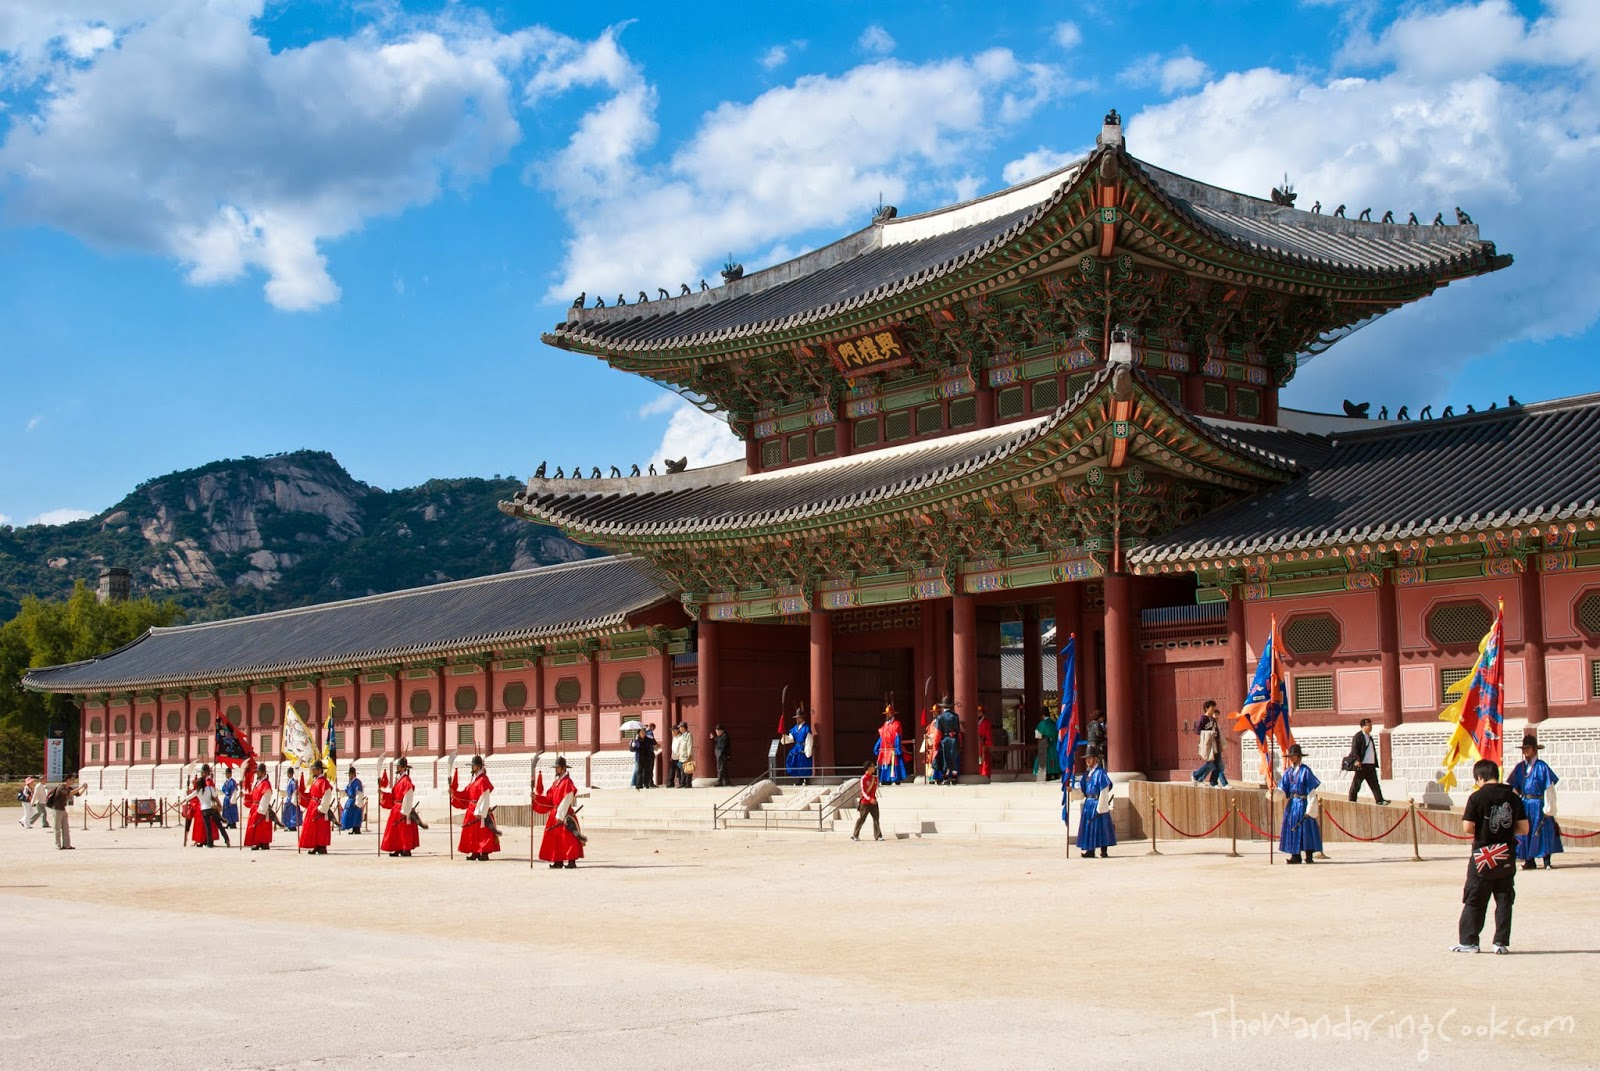 Holiday in Seoul, honeymoon, Jeju island, Seongsan Ilchubong, UNESCO World Heritage, Cheonjiyeon Waterfall, Mount Halla, Dol Hareubang, Jingwansa Temple, Korean dance,